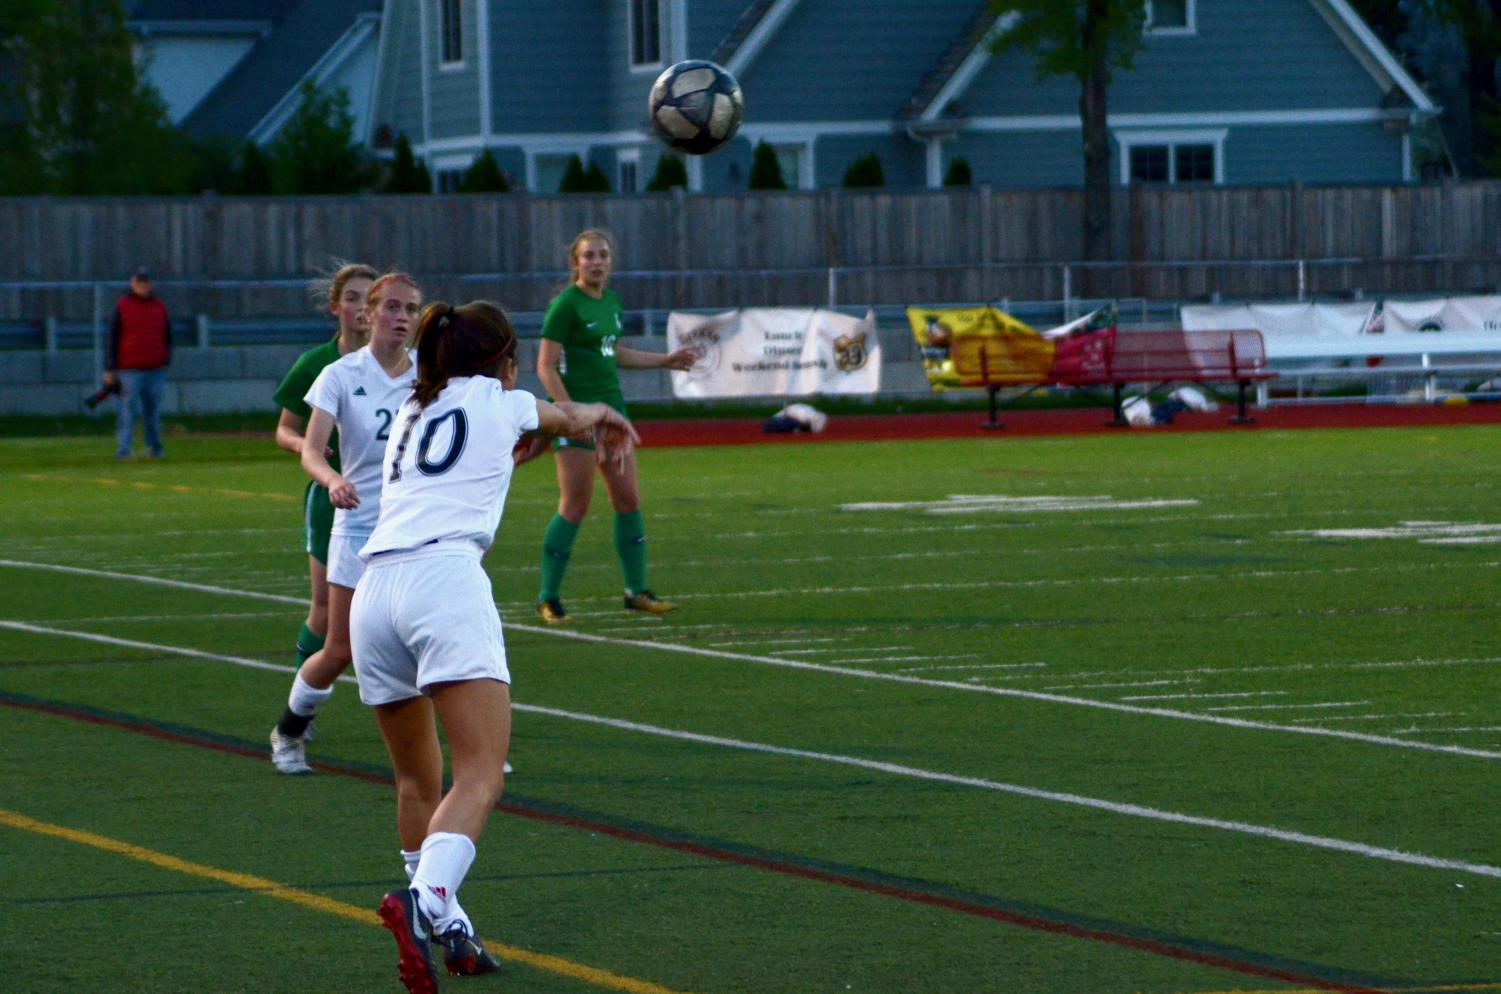 On+Tuesday%2C+May+14%2C+girls+soccer+played+against+York+in+the+IHSA+Regional.+